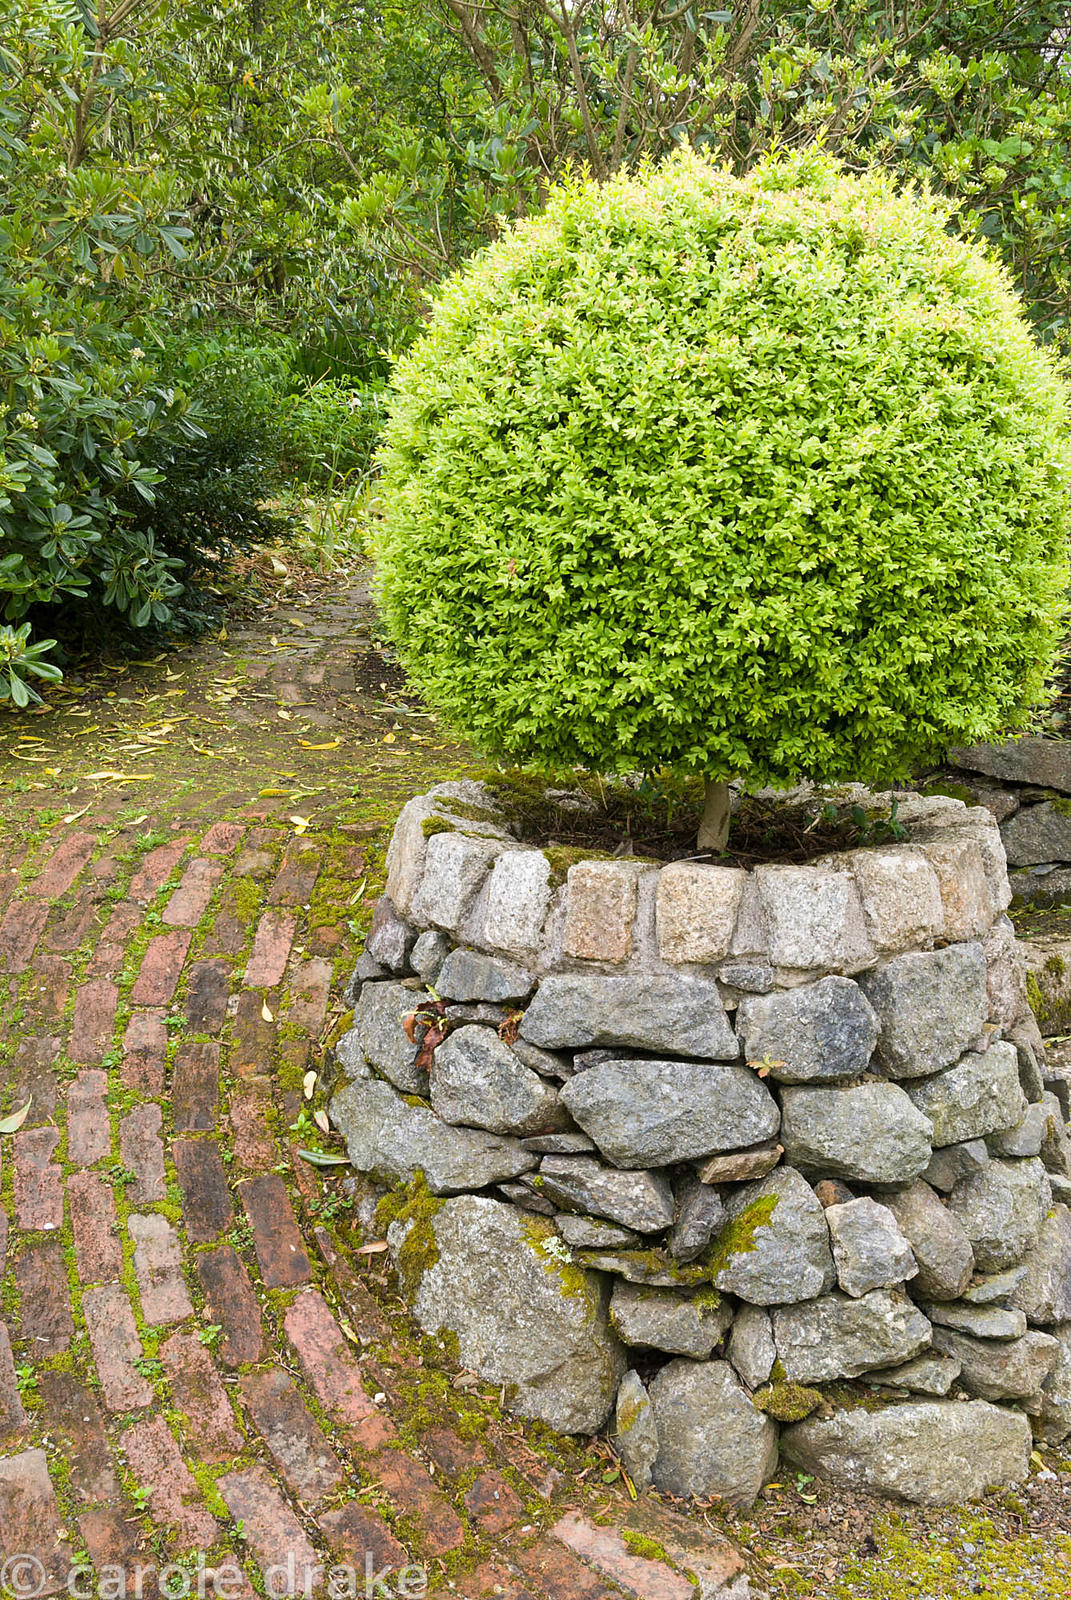 Static stone container with clipped box frames brick path into Tiara garden. Caervallack Farm, St Martin, Helston, Cornwall, UK